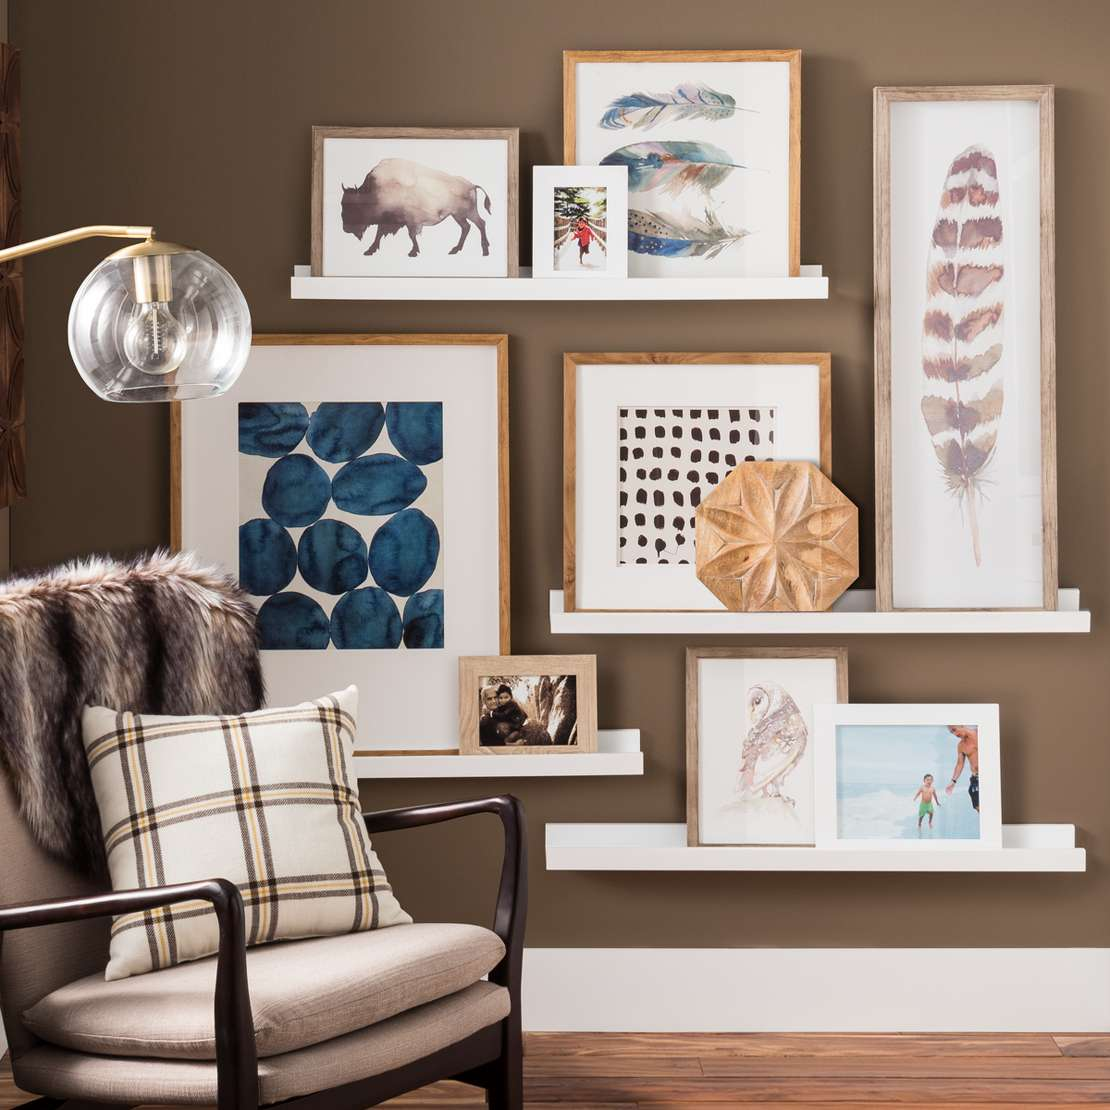 How To Create A Gallery Wall For Your Home